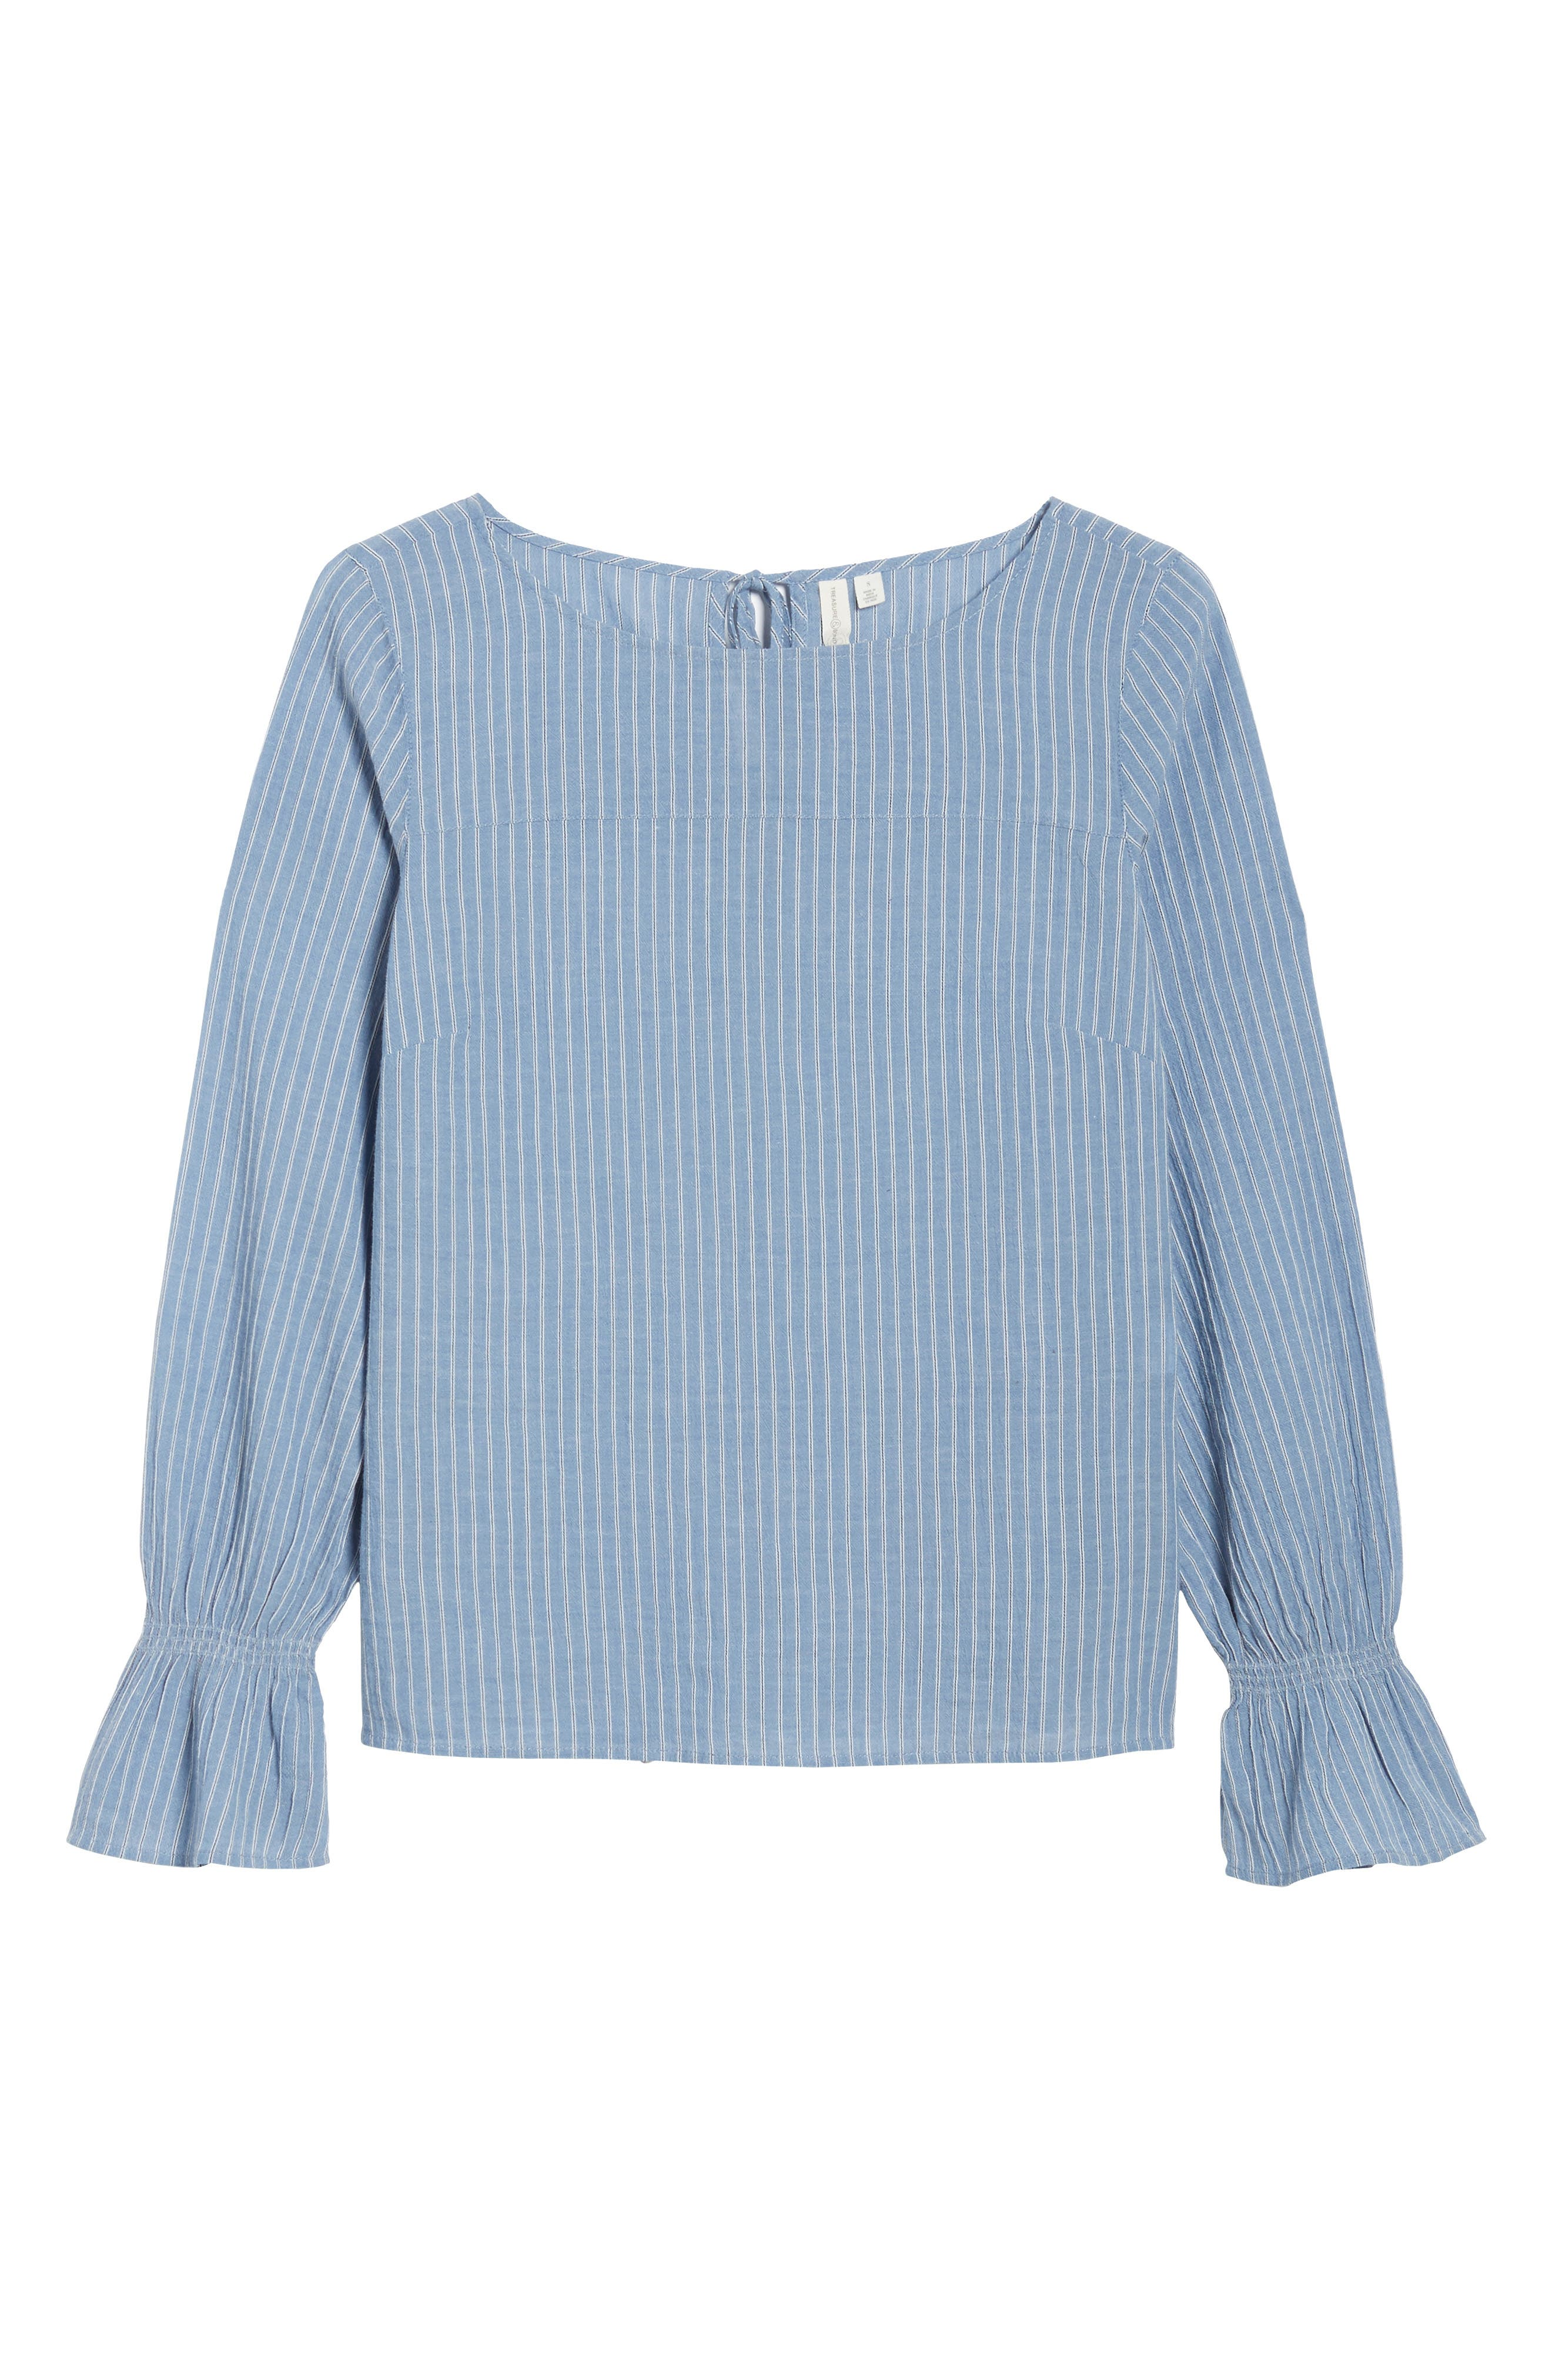 Tie Back Top,                             Alternate thumbnail 7, color,                             Blue Airy Stripe